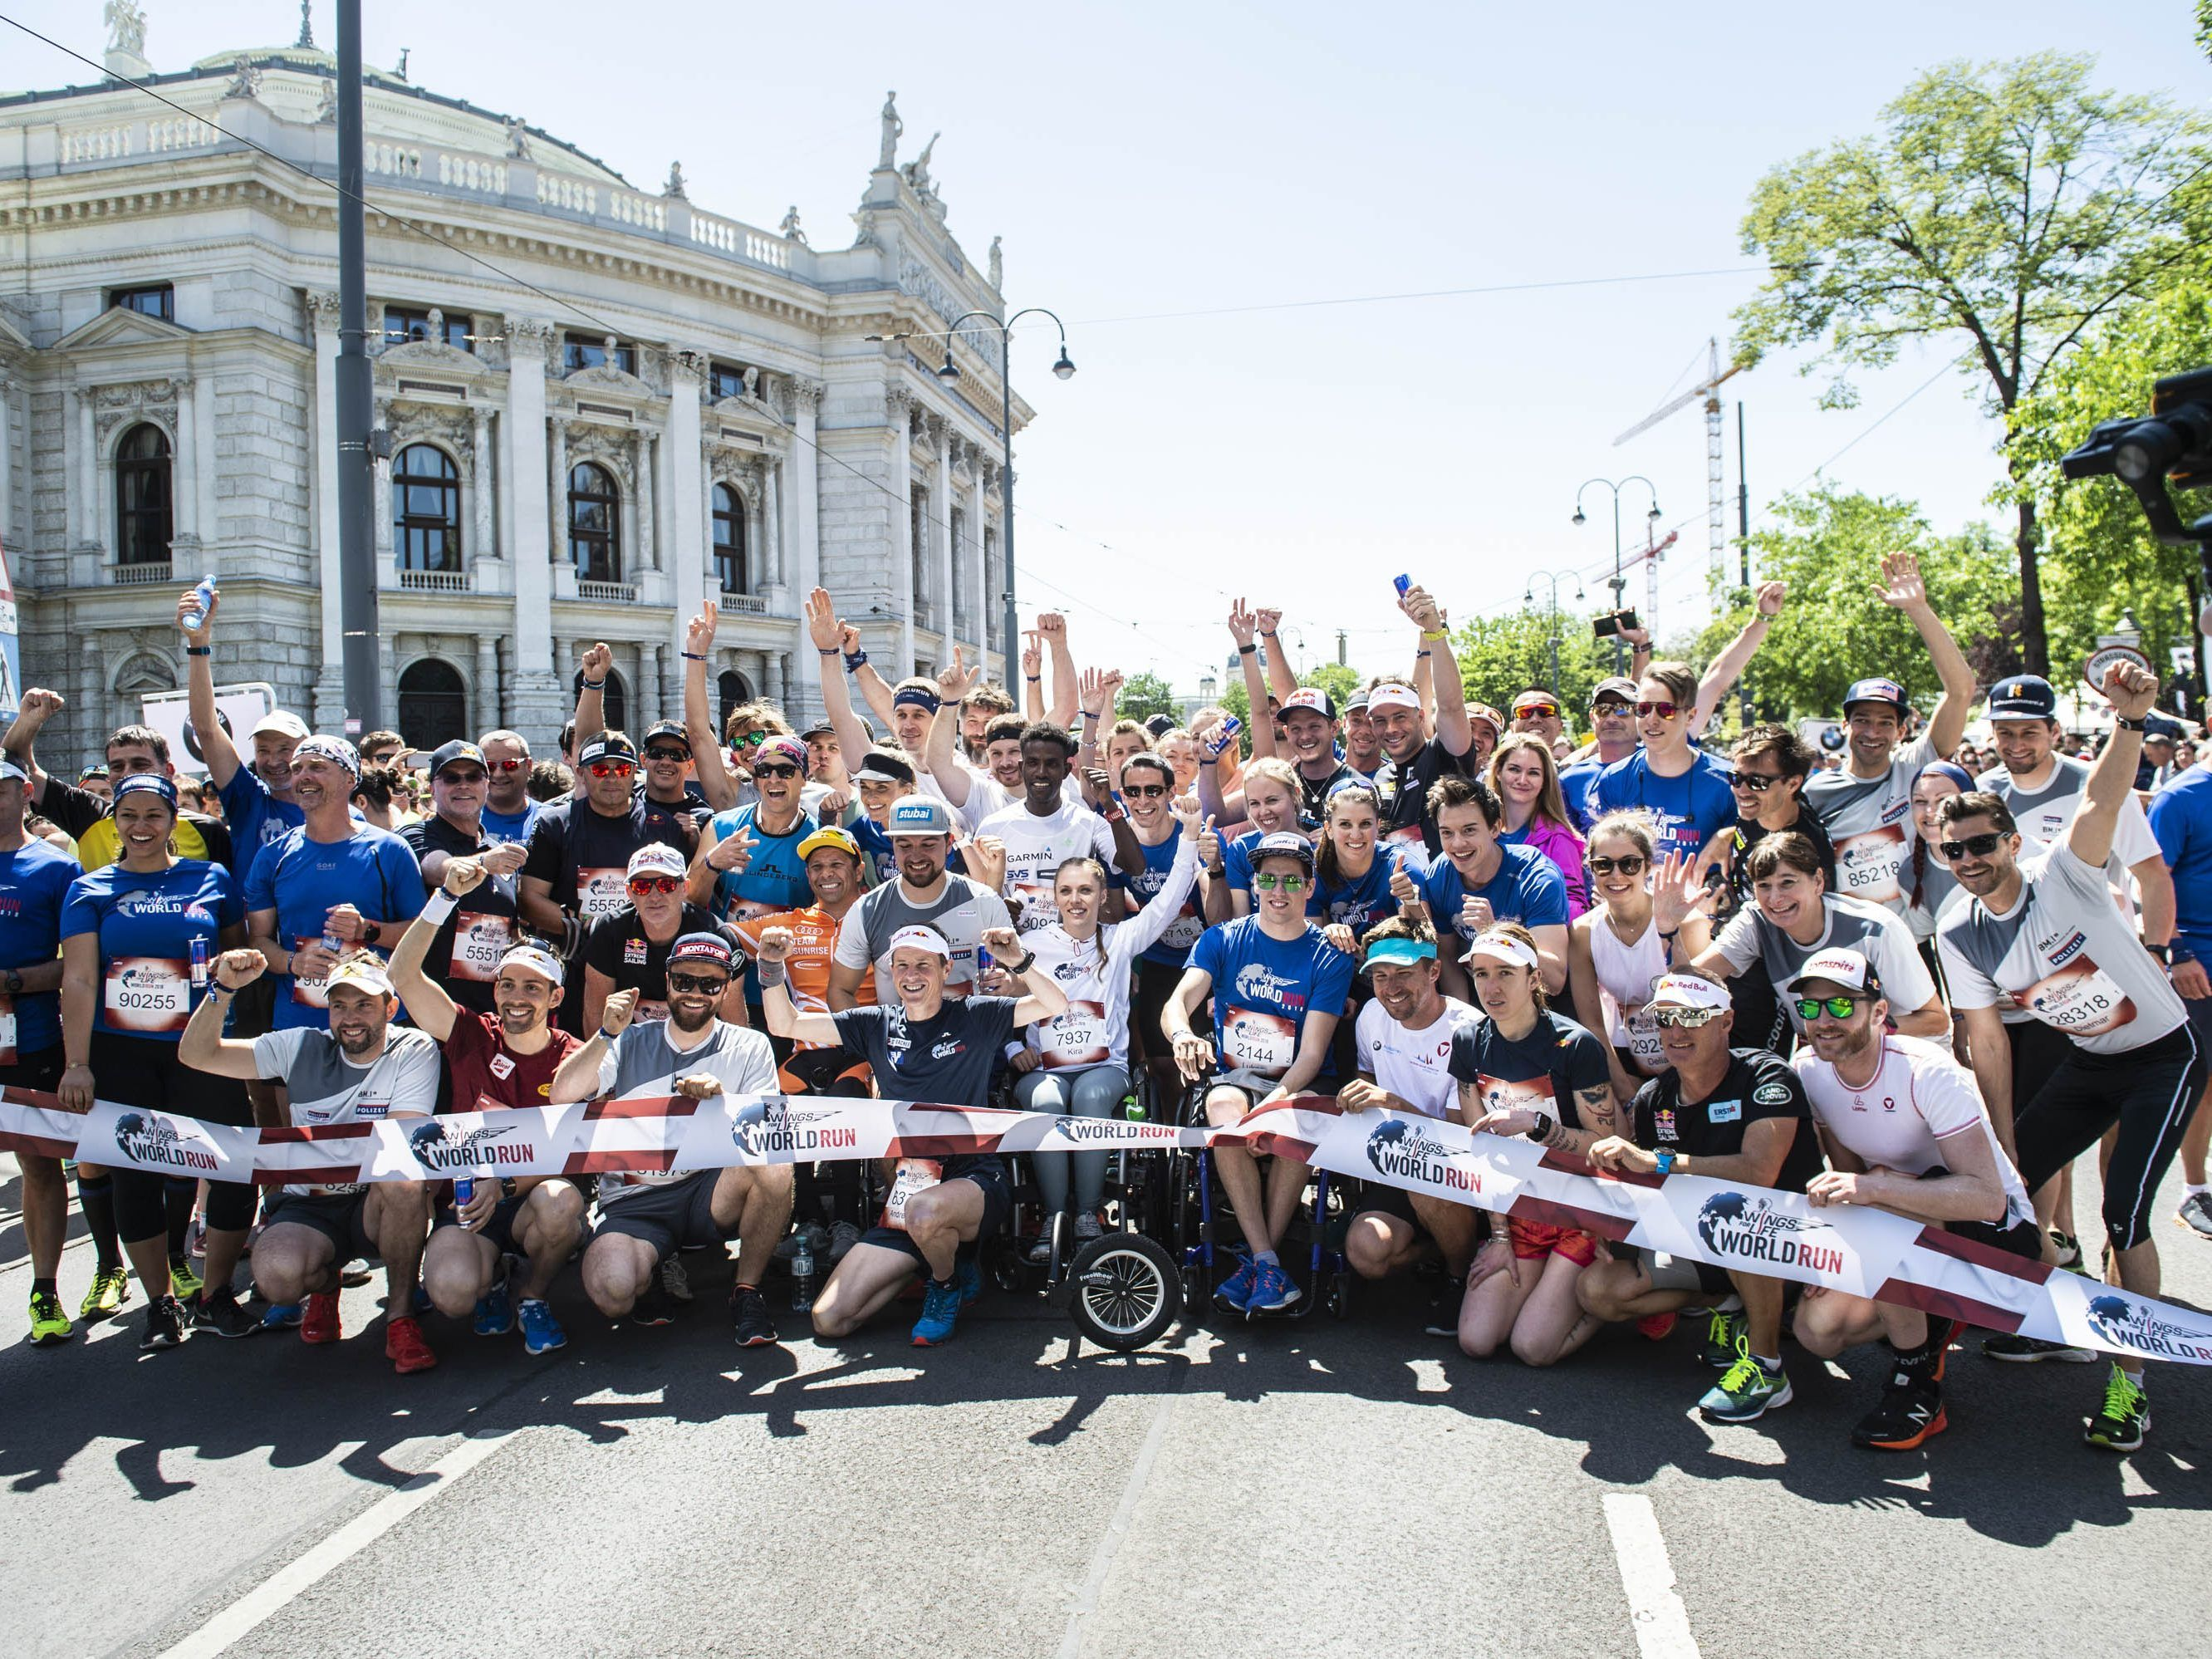 Am 5. Mai findet der Wings for Life World Run statt.